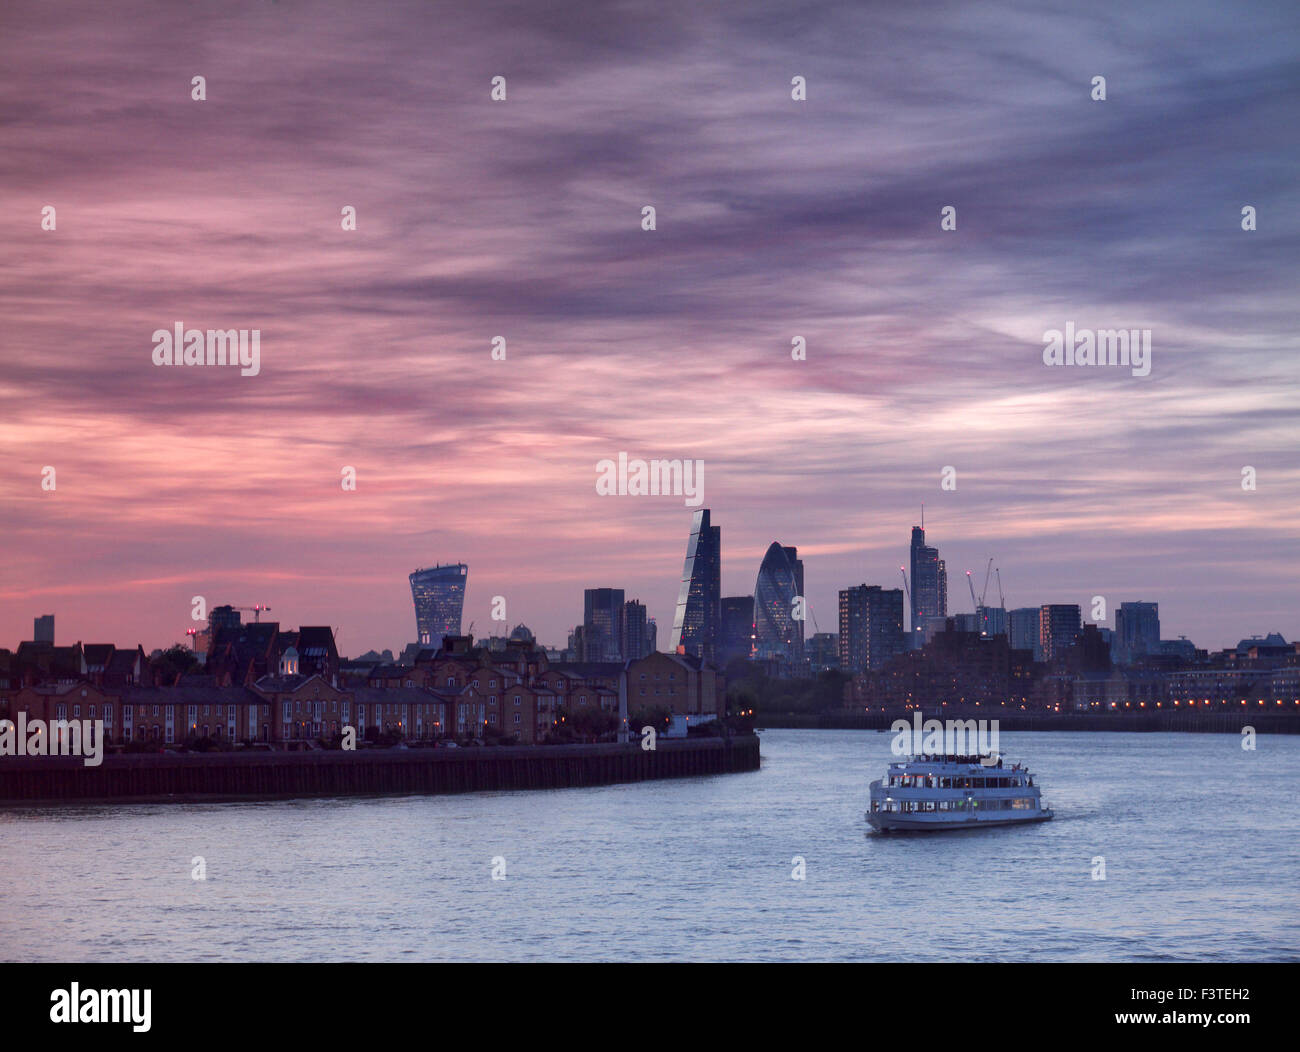 London financial city centre London viewed from Canary Wharf with river cruise boat in foreground at sunset London - Stock Image